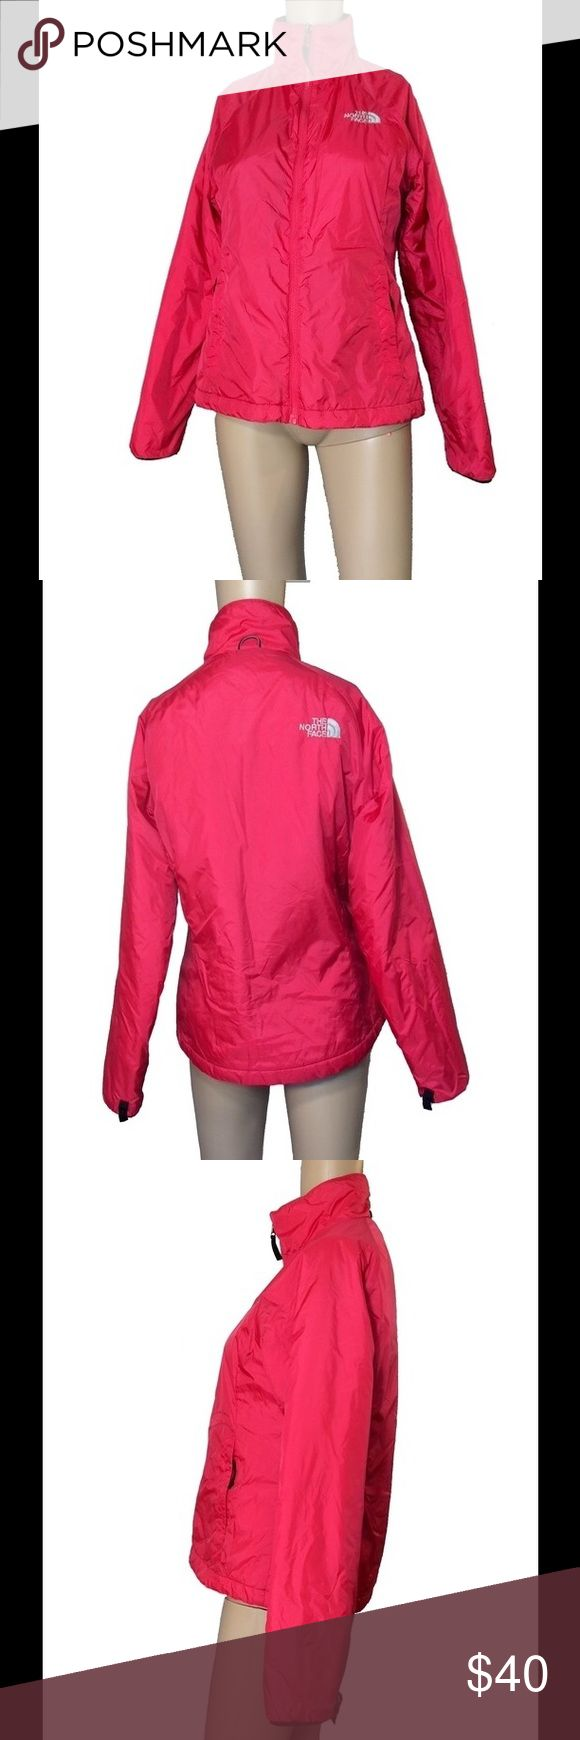 """North Face hot pink zip up jacket North Face hot pink zip up jacket.  Pockets on either side of the jacket and one on the interior.  Size S/P - fits more like a size medium.  Filling on the interior of the jacket.  White North Face embroidery on both the front and the back of the jacket.  Mannequin measurements:  height - 5'8  Bust - 32""""  waist - 24.5  hips - 32"""" North Face Jackets & Coats"""